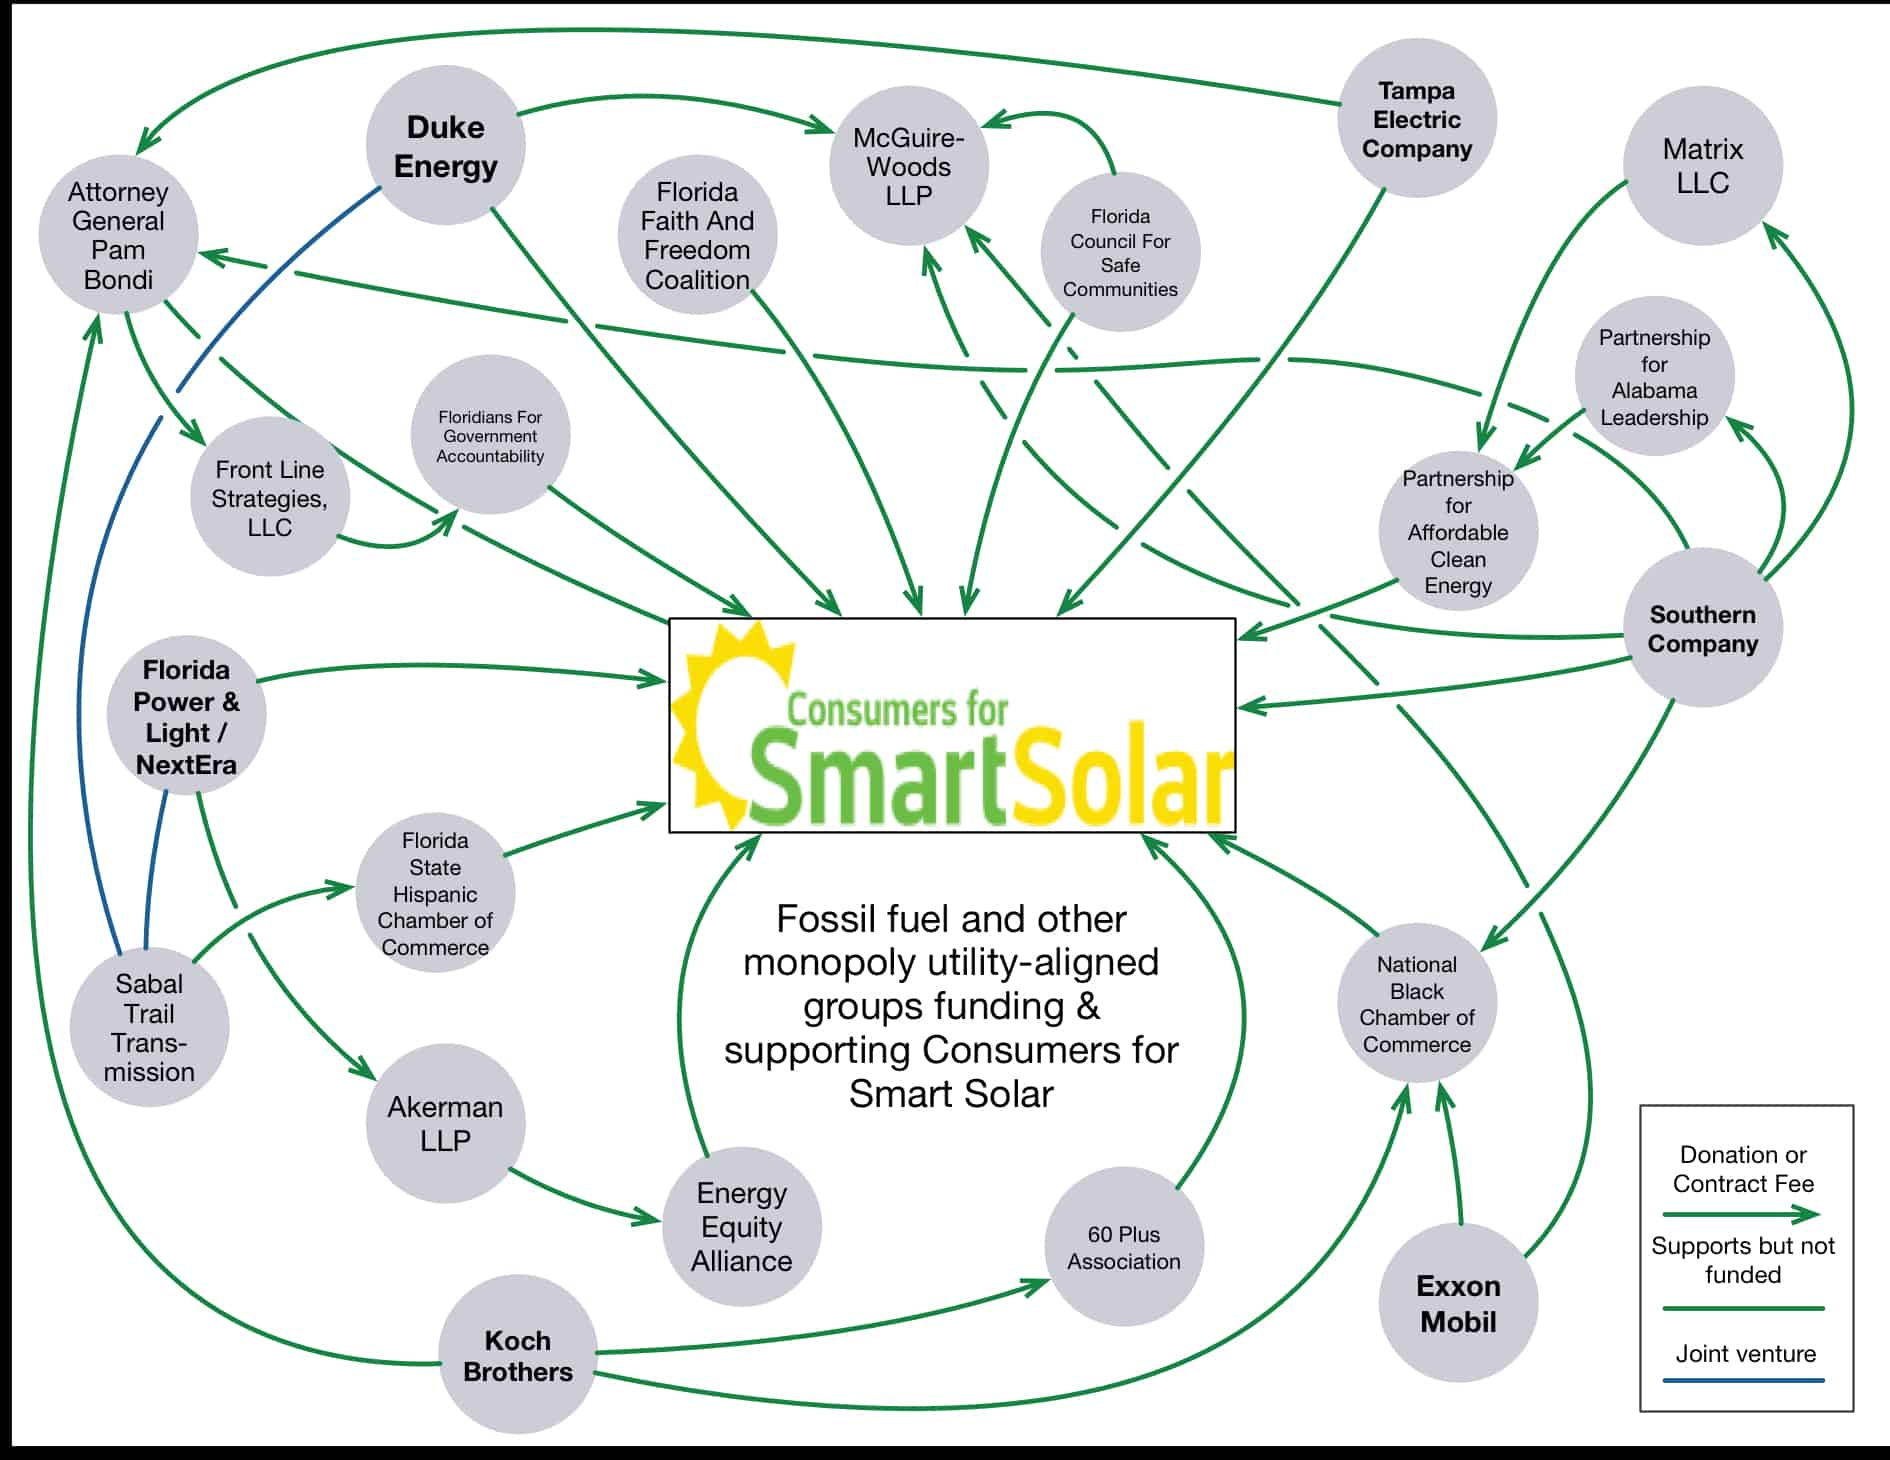 Consumers for Smart Solar and Pam Bondi copy